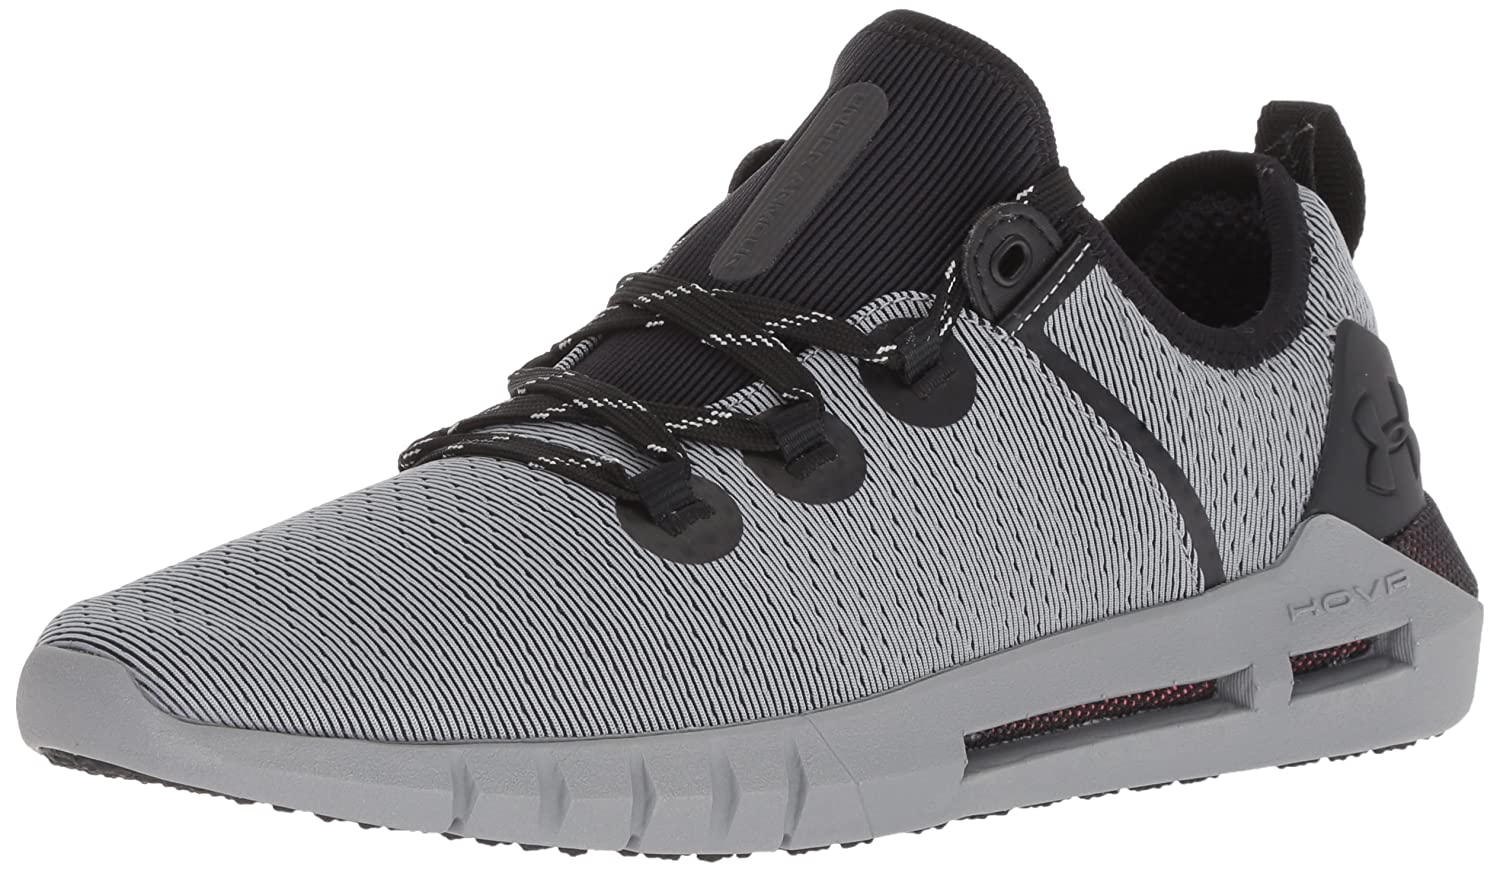 new products 07b2b cfca8 Under Armour Women's HOVR SLK Sneaker